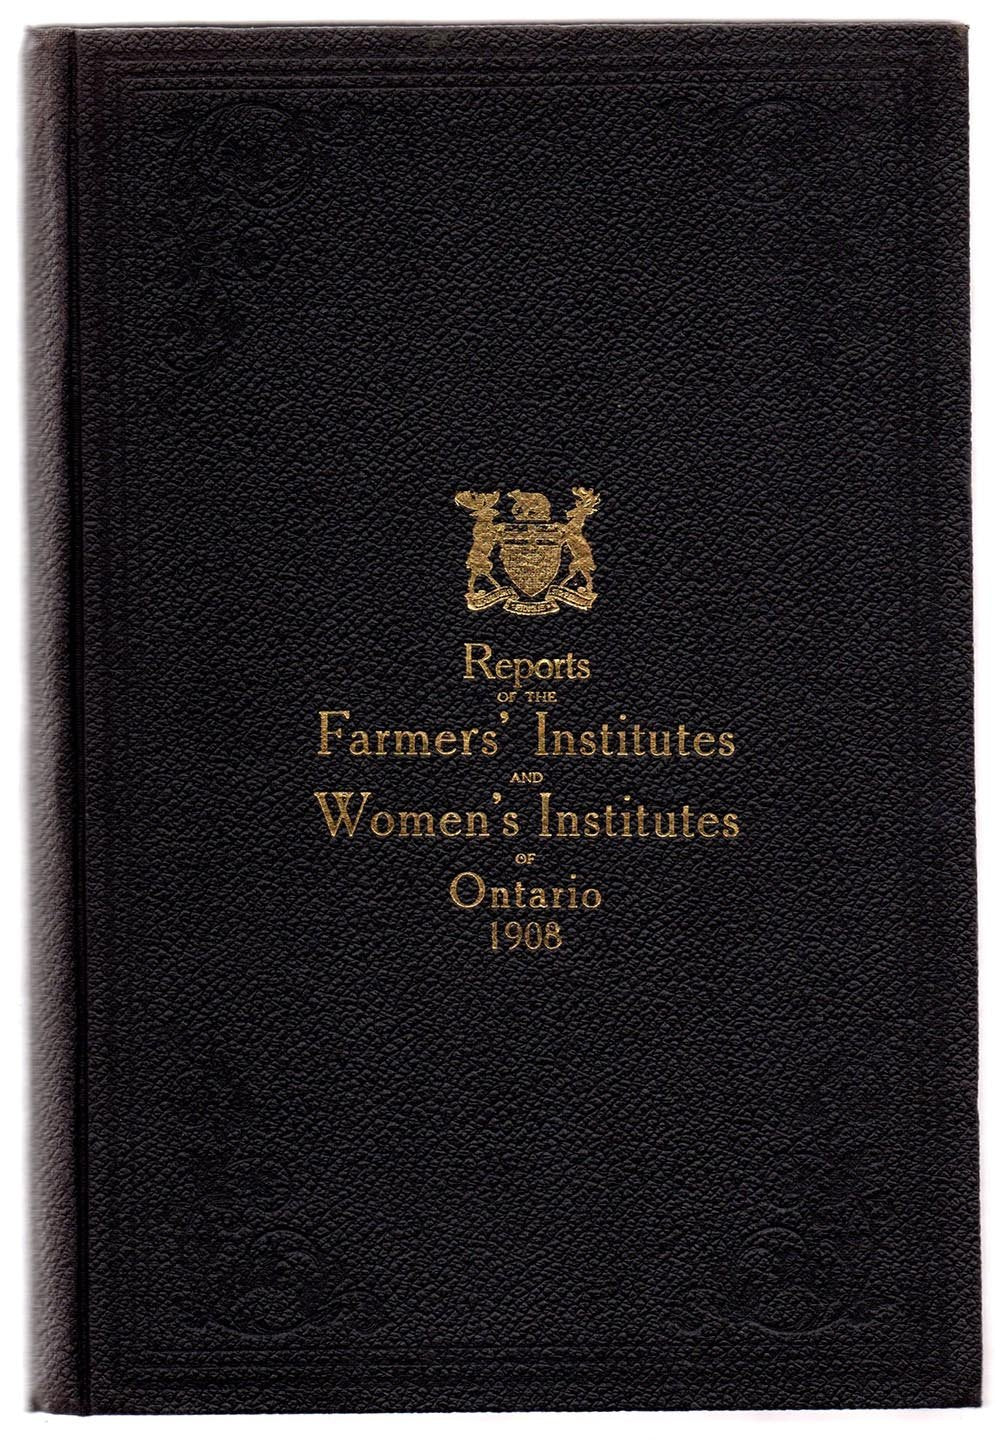 Report of the Farmers' Institutes of the Province of Ontario 1908.